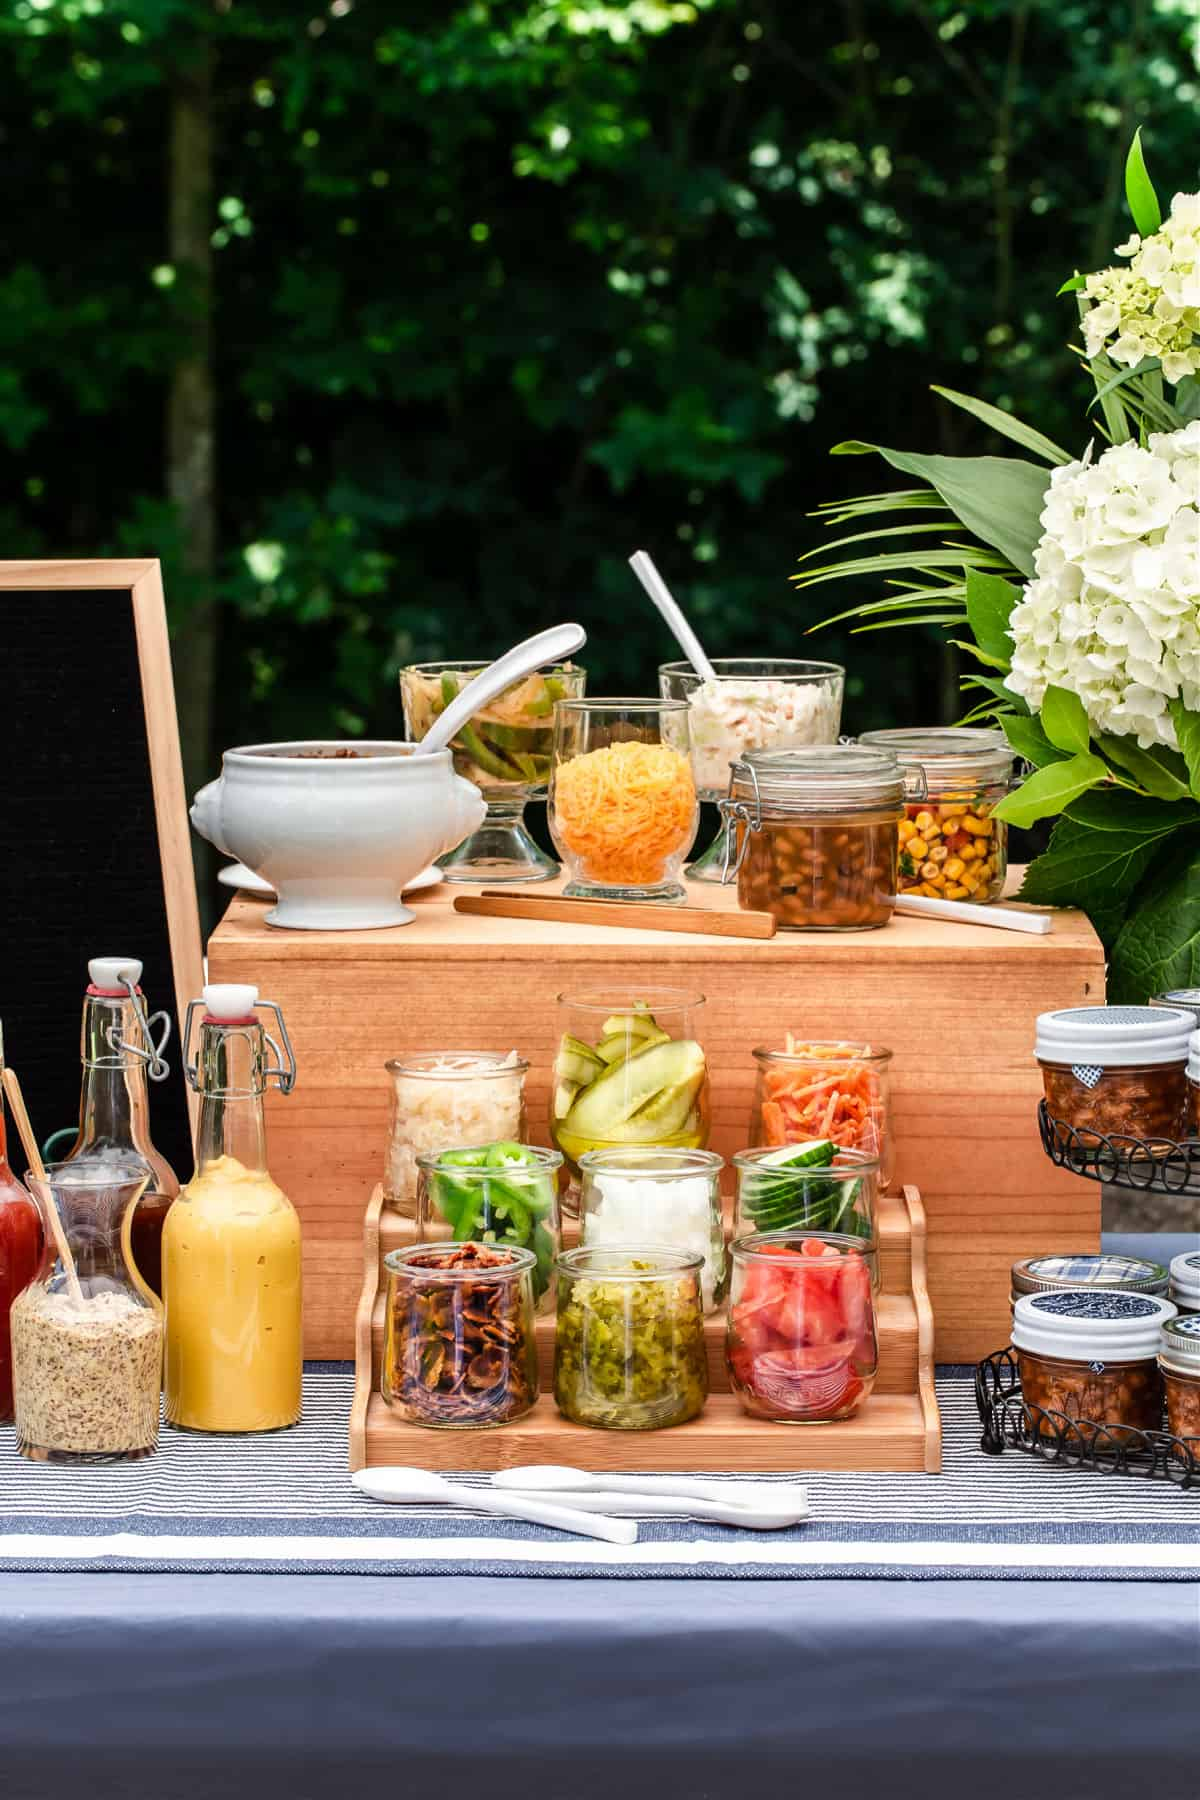 hot dog toppings in jars and bottles, on party table